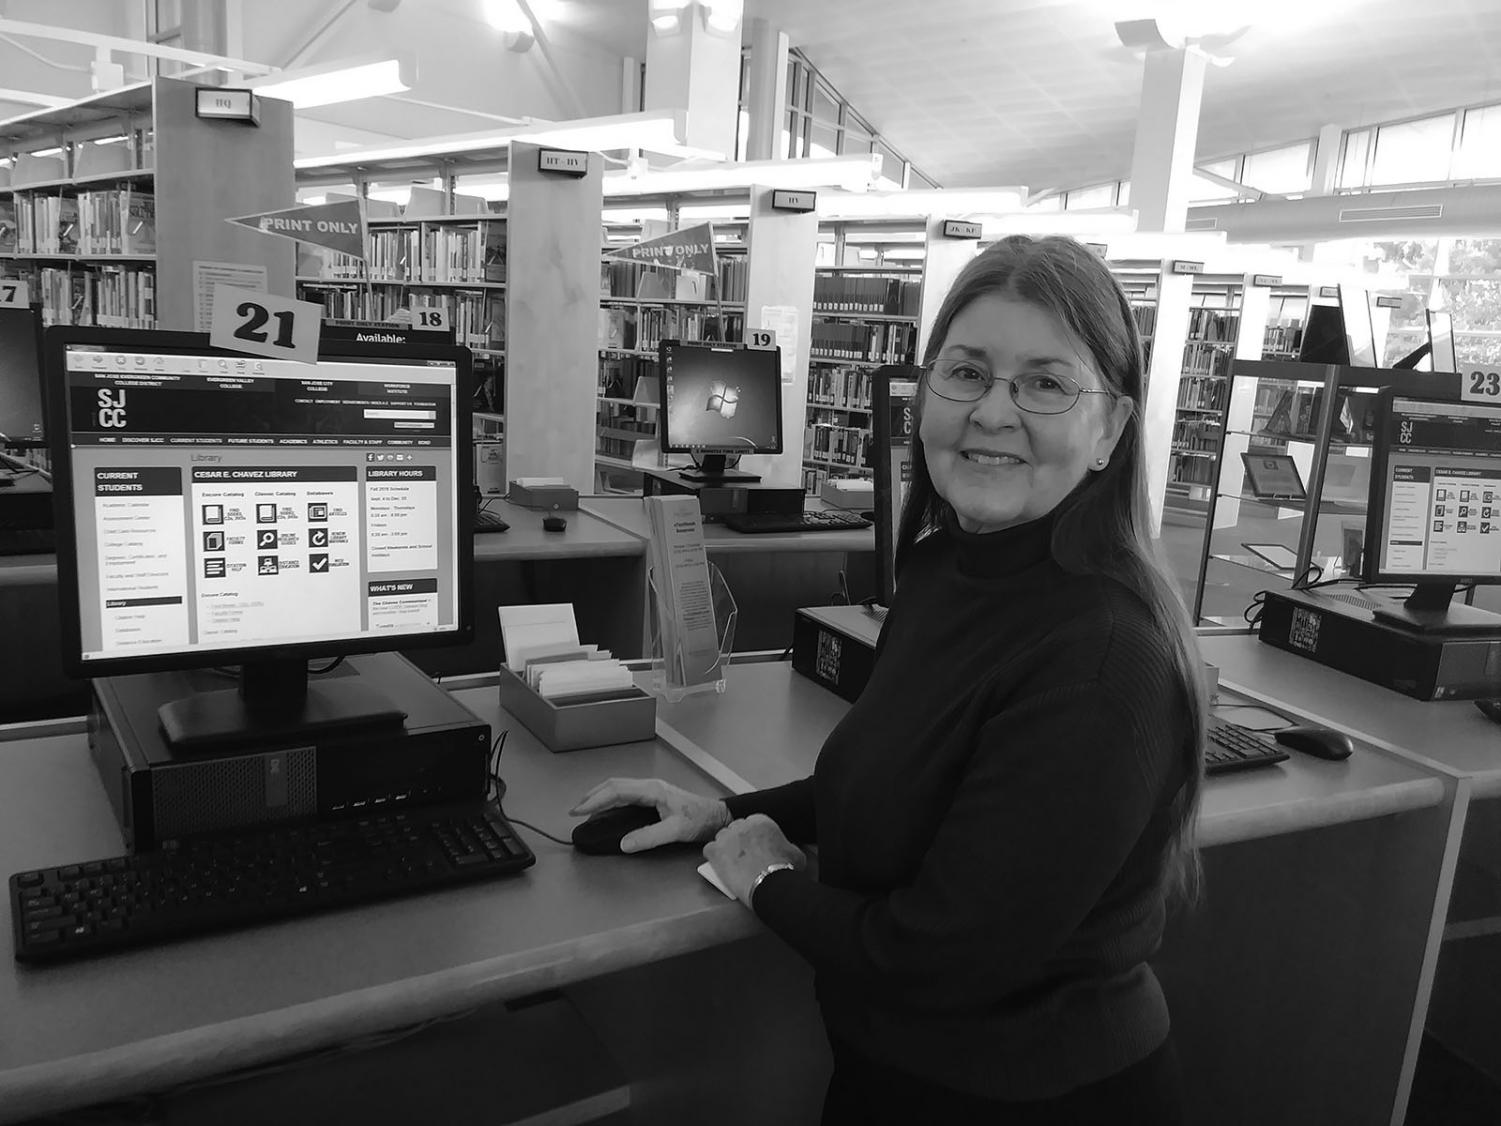 Librarian Linda Meyer shows the resources on the library's website, Dec 11. Meyer advised students to visit the library home page, before searching on Google. PHOTO BY KAYNE GALLEGOS TIMES STAFF